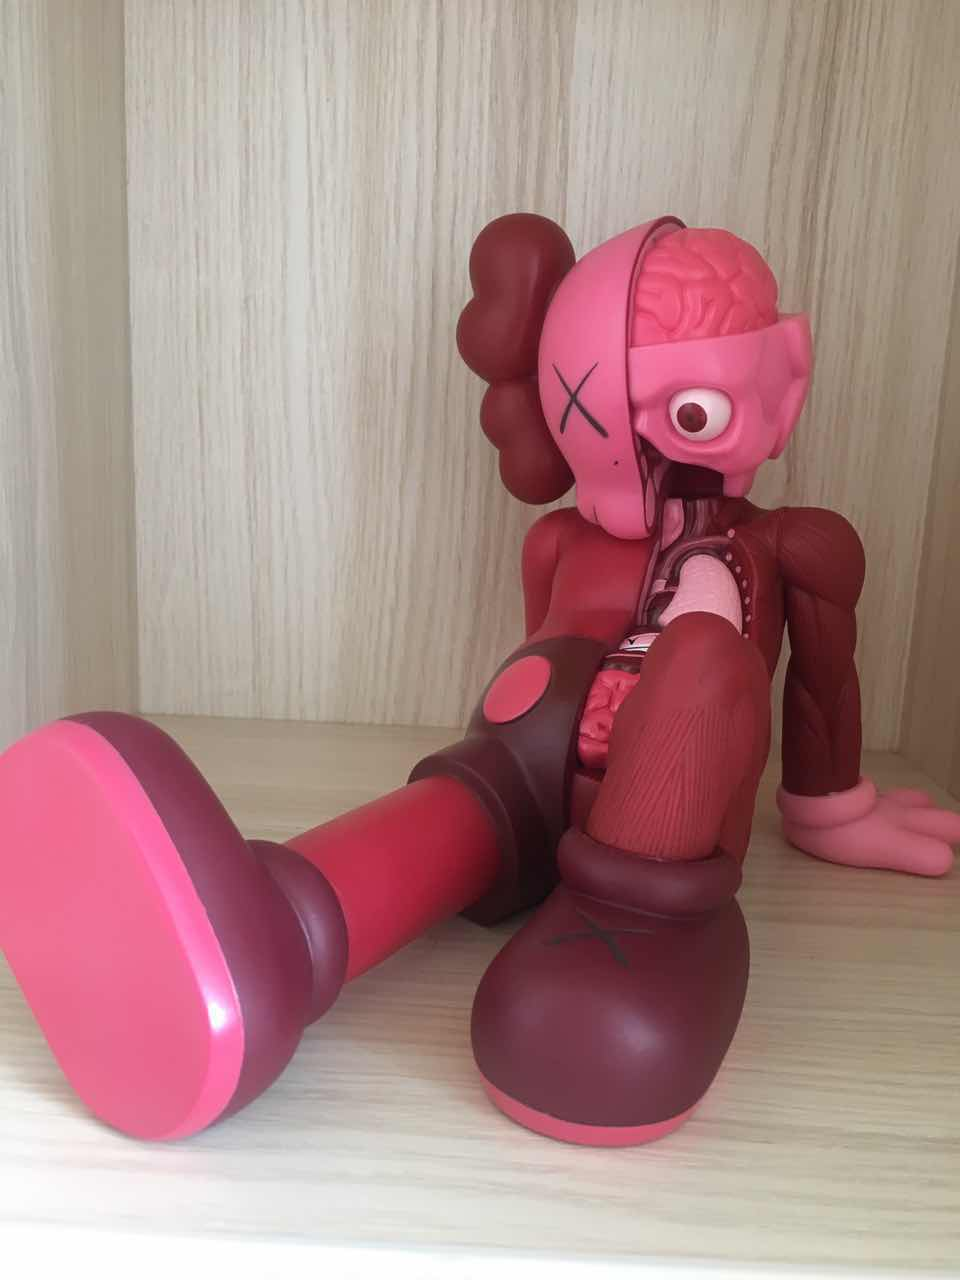 16 inch Kaws Companion kaws original fake kaws dissected Resting MADNESS PVC Action figure in box